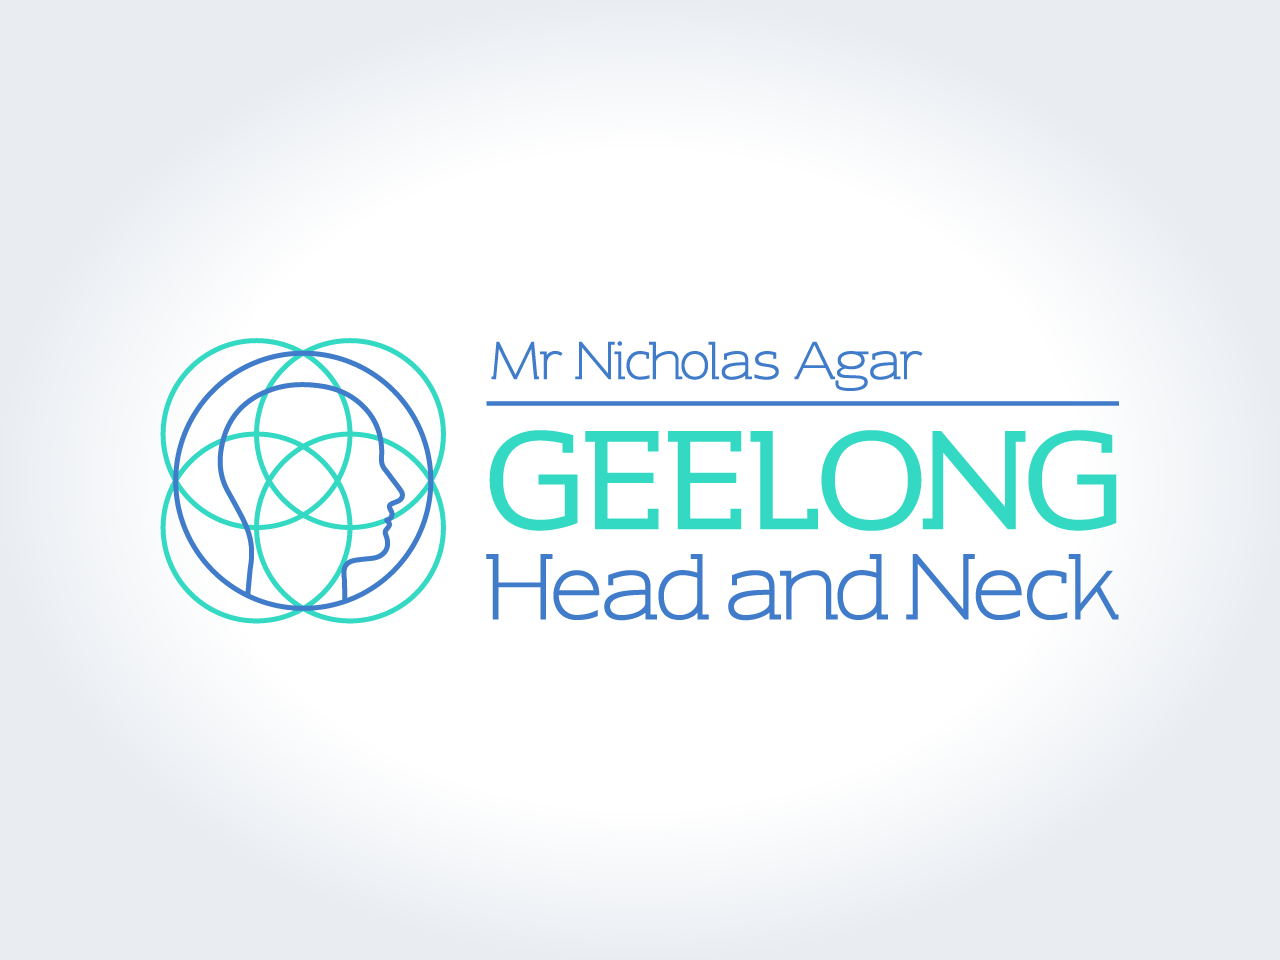 GEELONG HEAD AND NECK - Linicon logo variation.